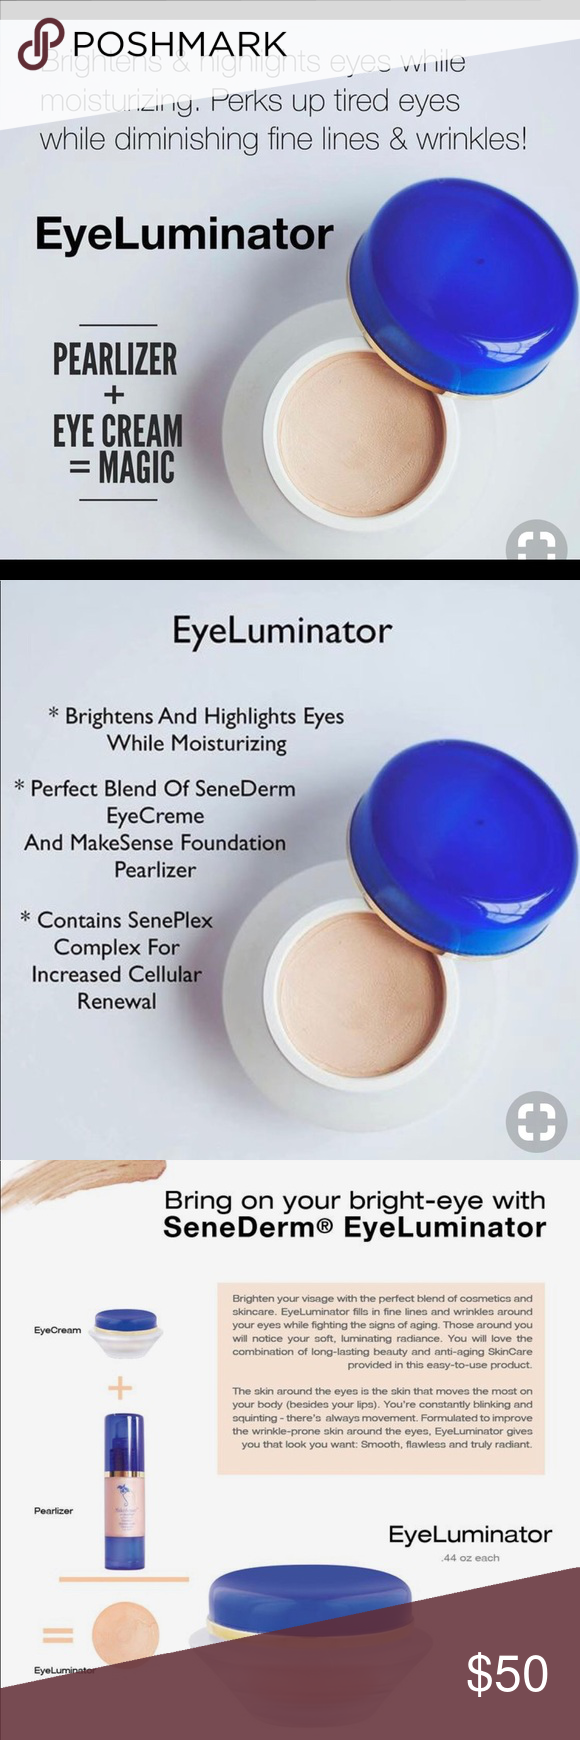 Senegence Eyeluminator The Perfect Blend Of Senederm Eyecreme And